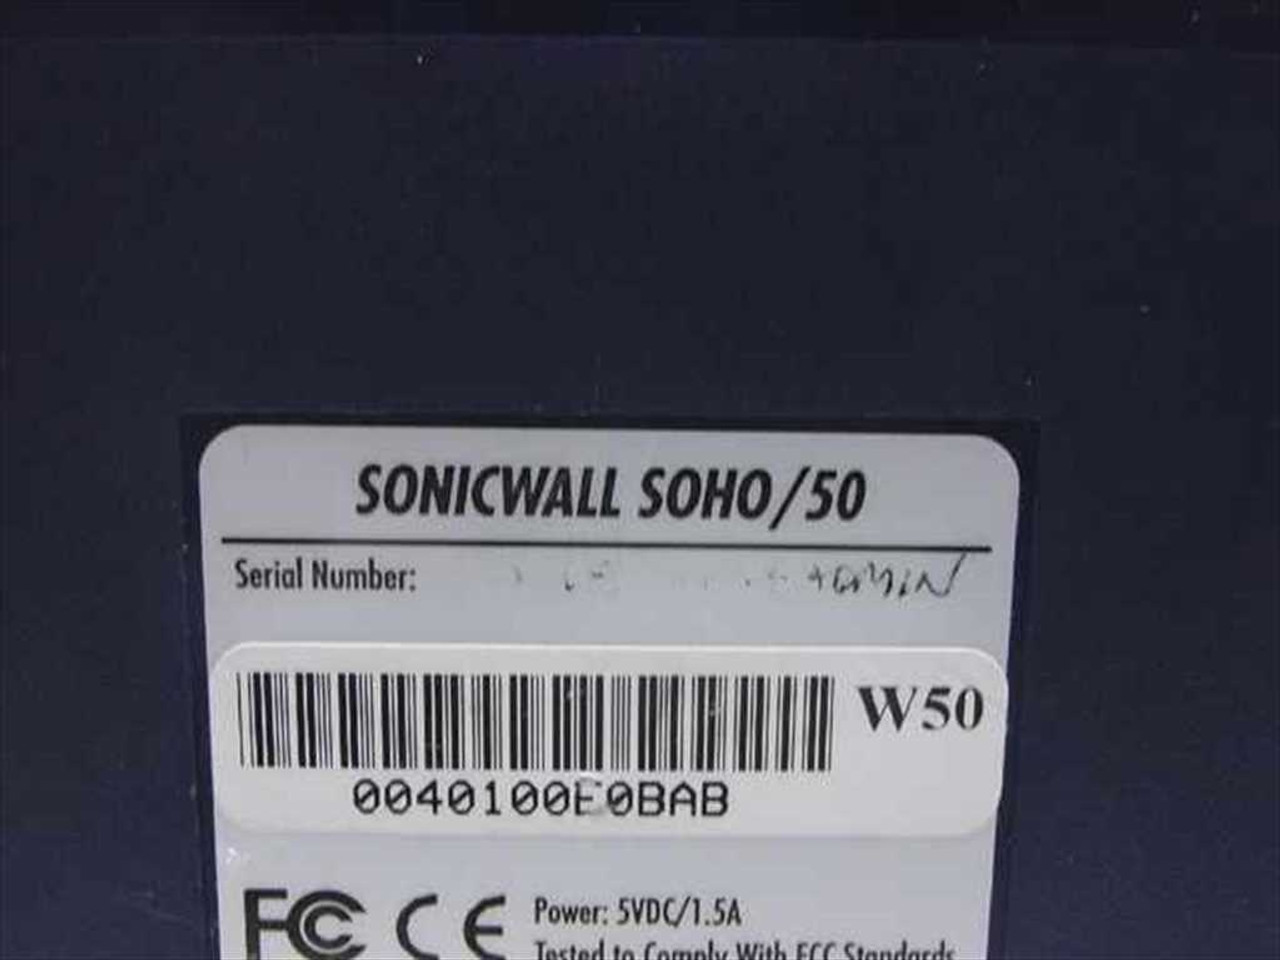 SonicWall Internet Security Appliance w/ SOHO/50 Device (Pro)